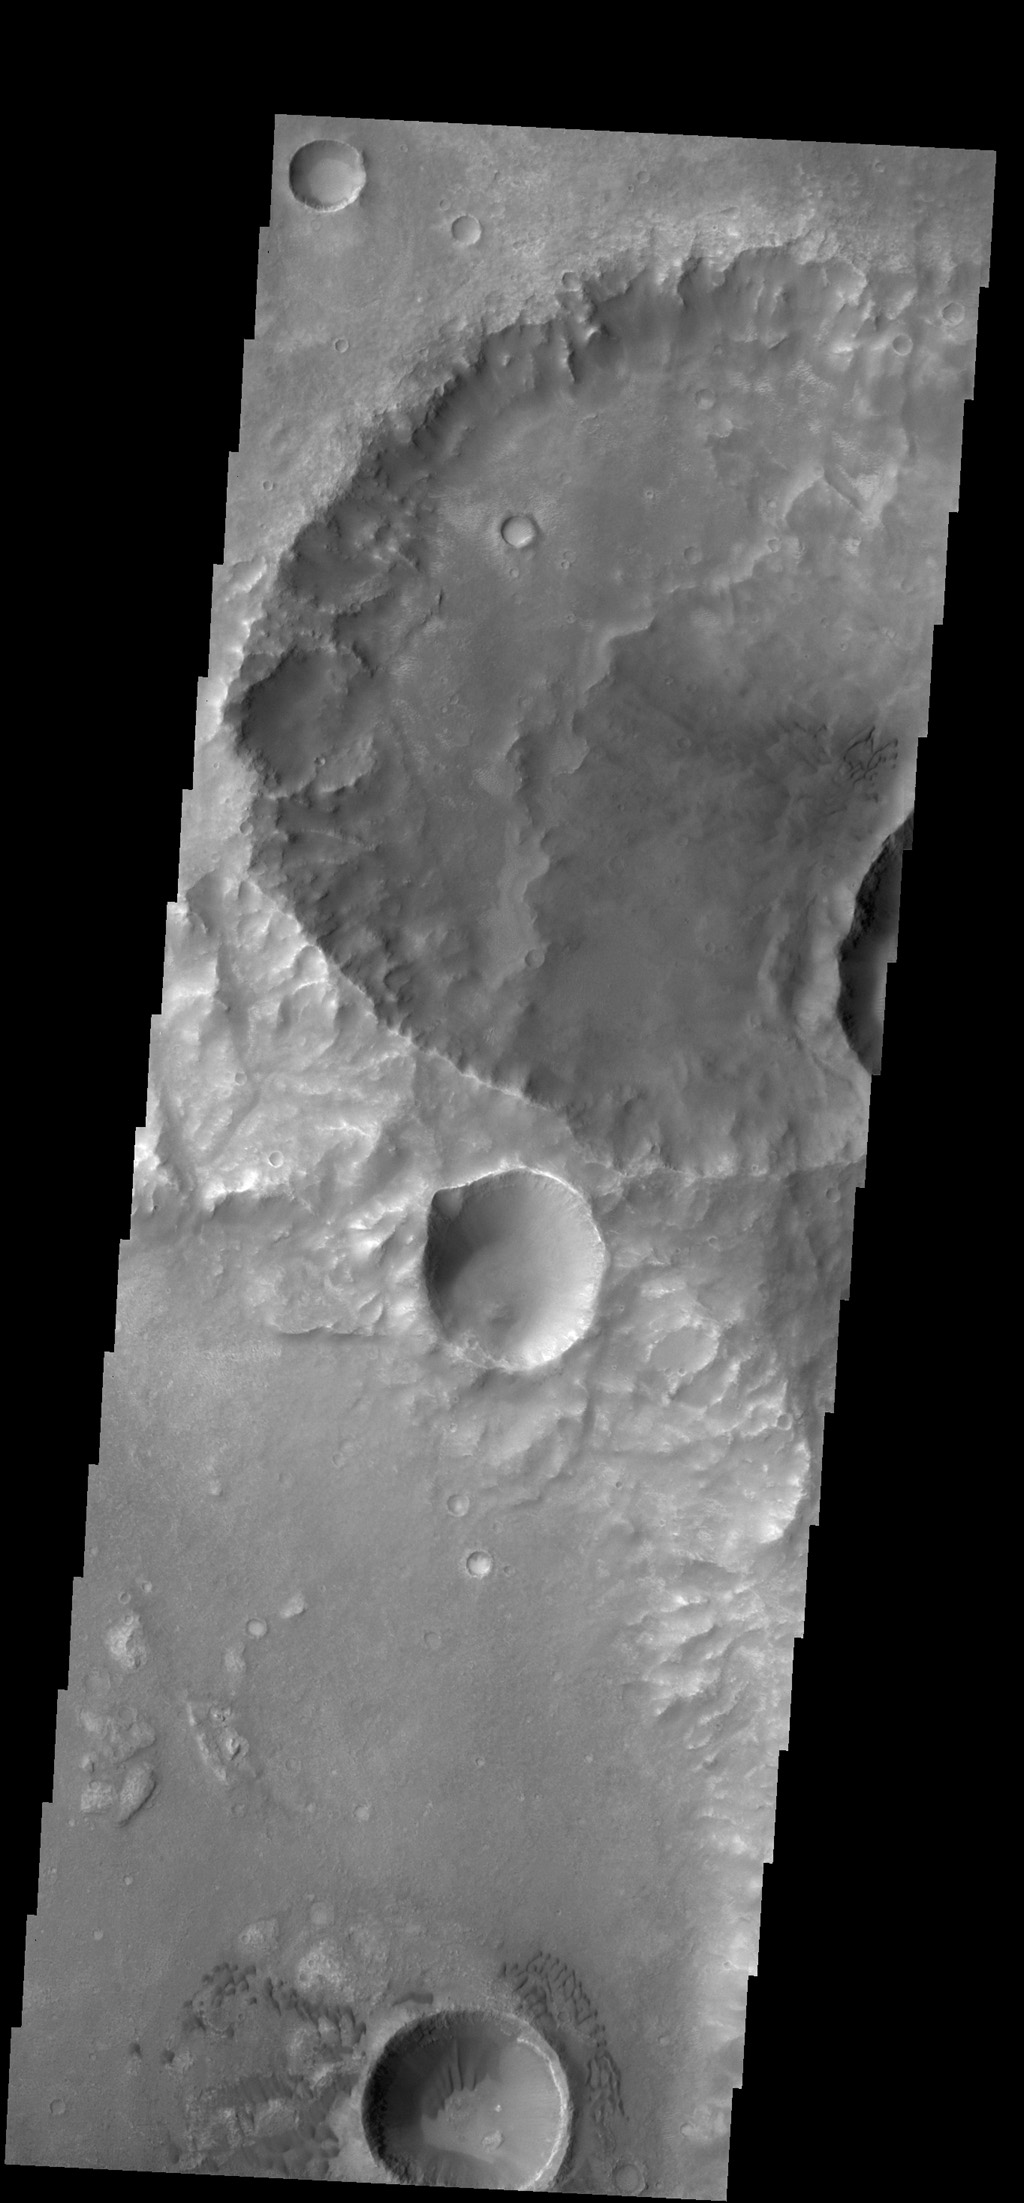 Dunes can be seen in the bottom and upper right central parts this image of Terra Cimmeria on Mars captured by NASA's 2001 Mars Odyssey spacecraft.